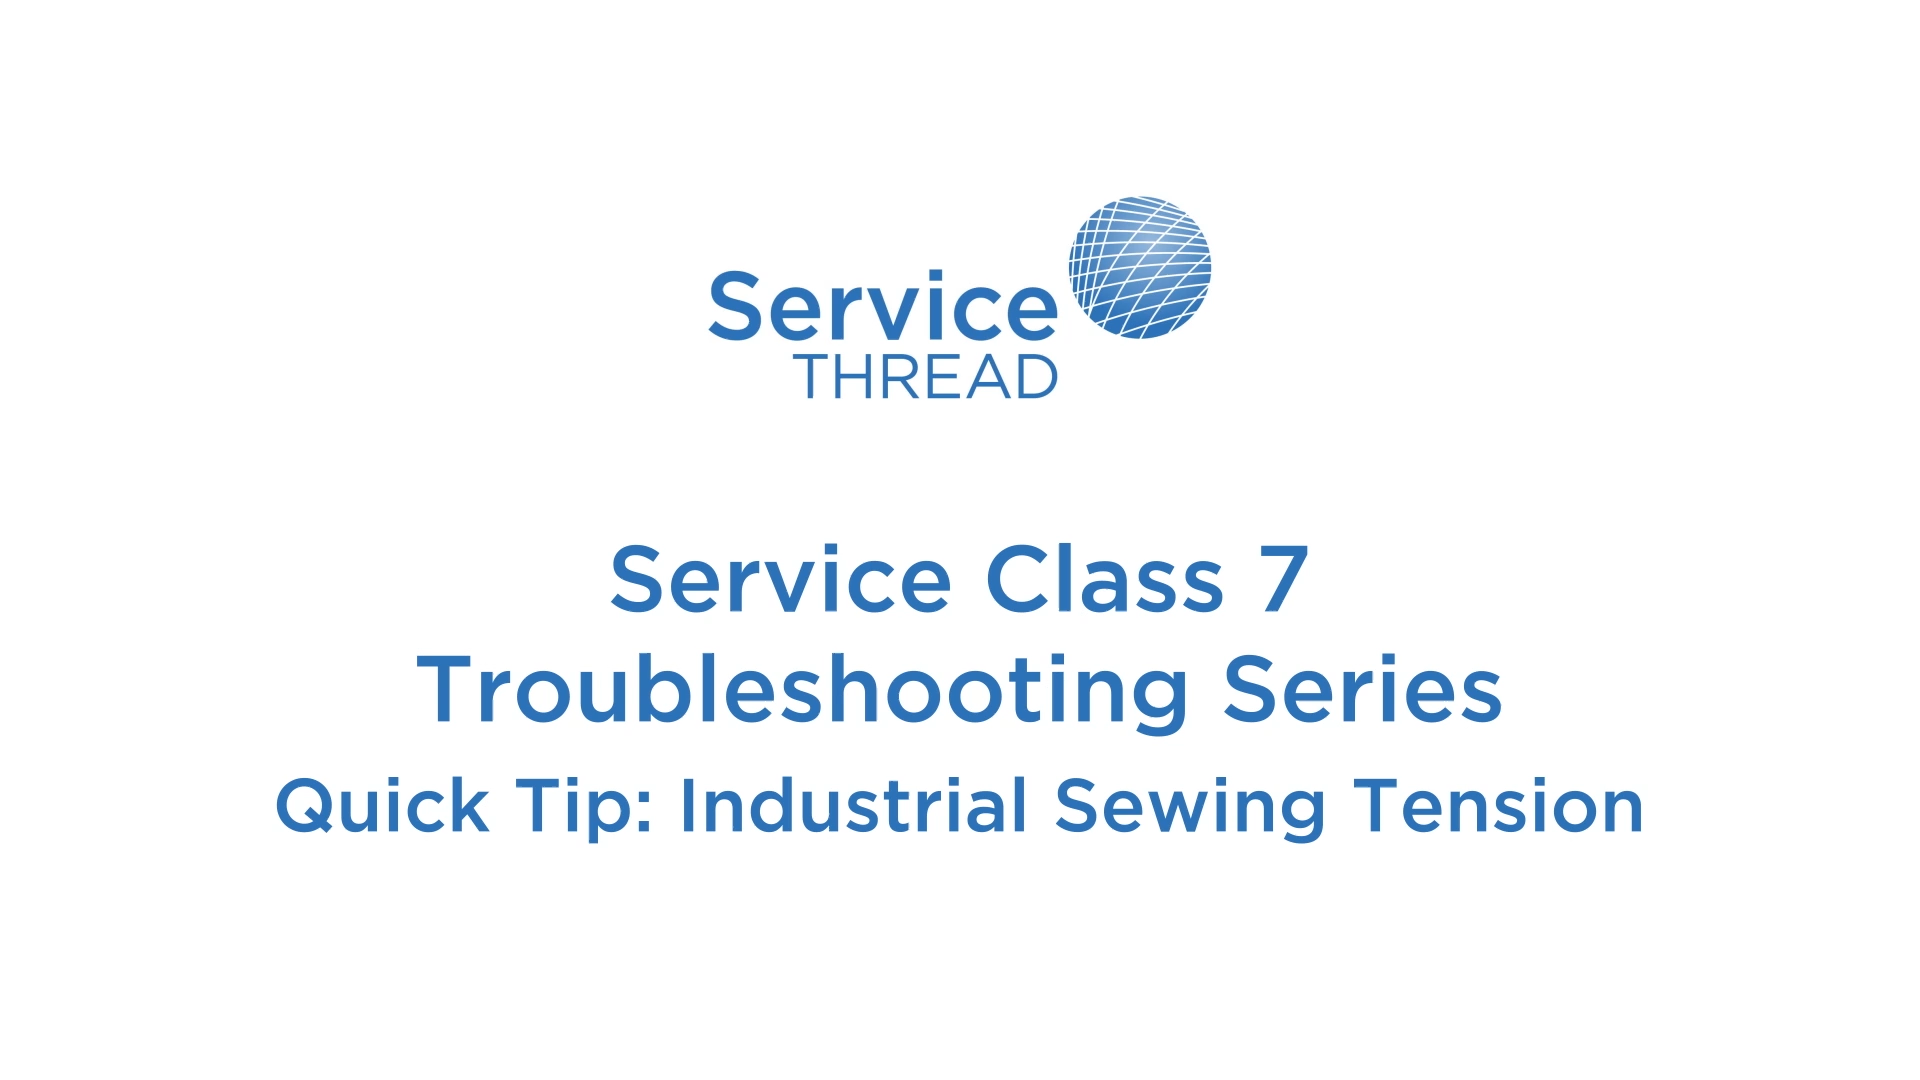 Quick tip - Industrial Sewing Tension